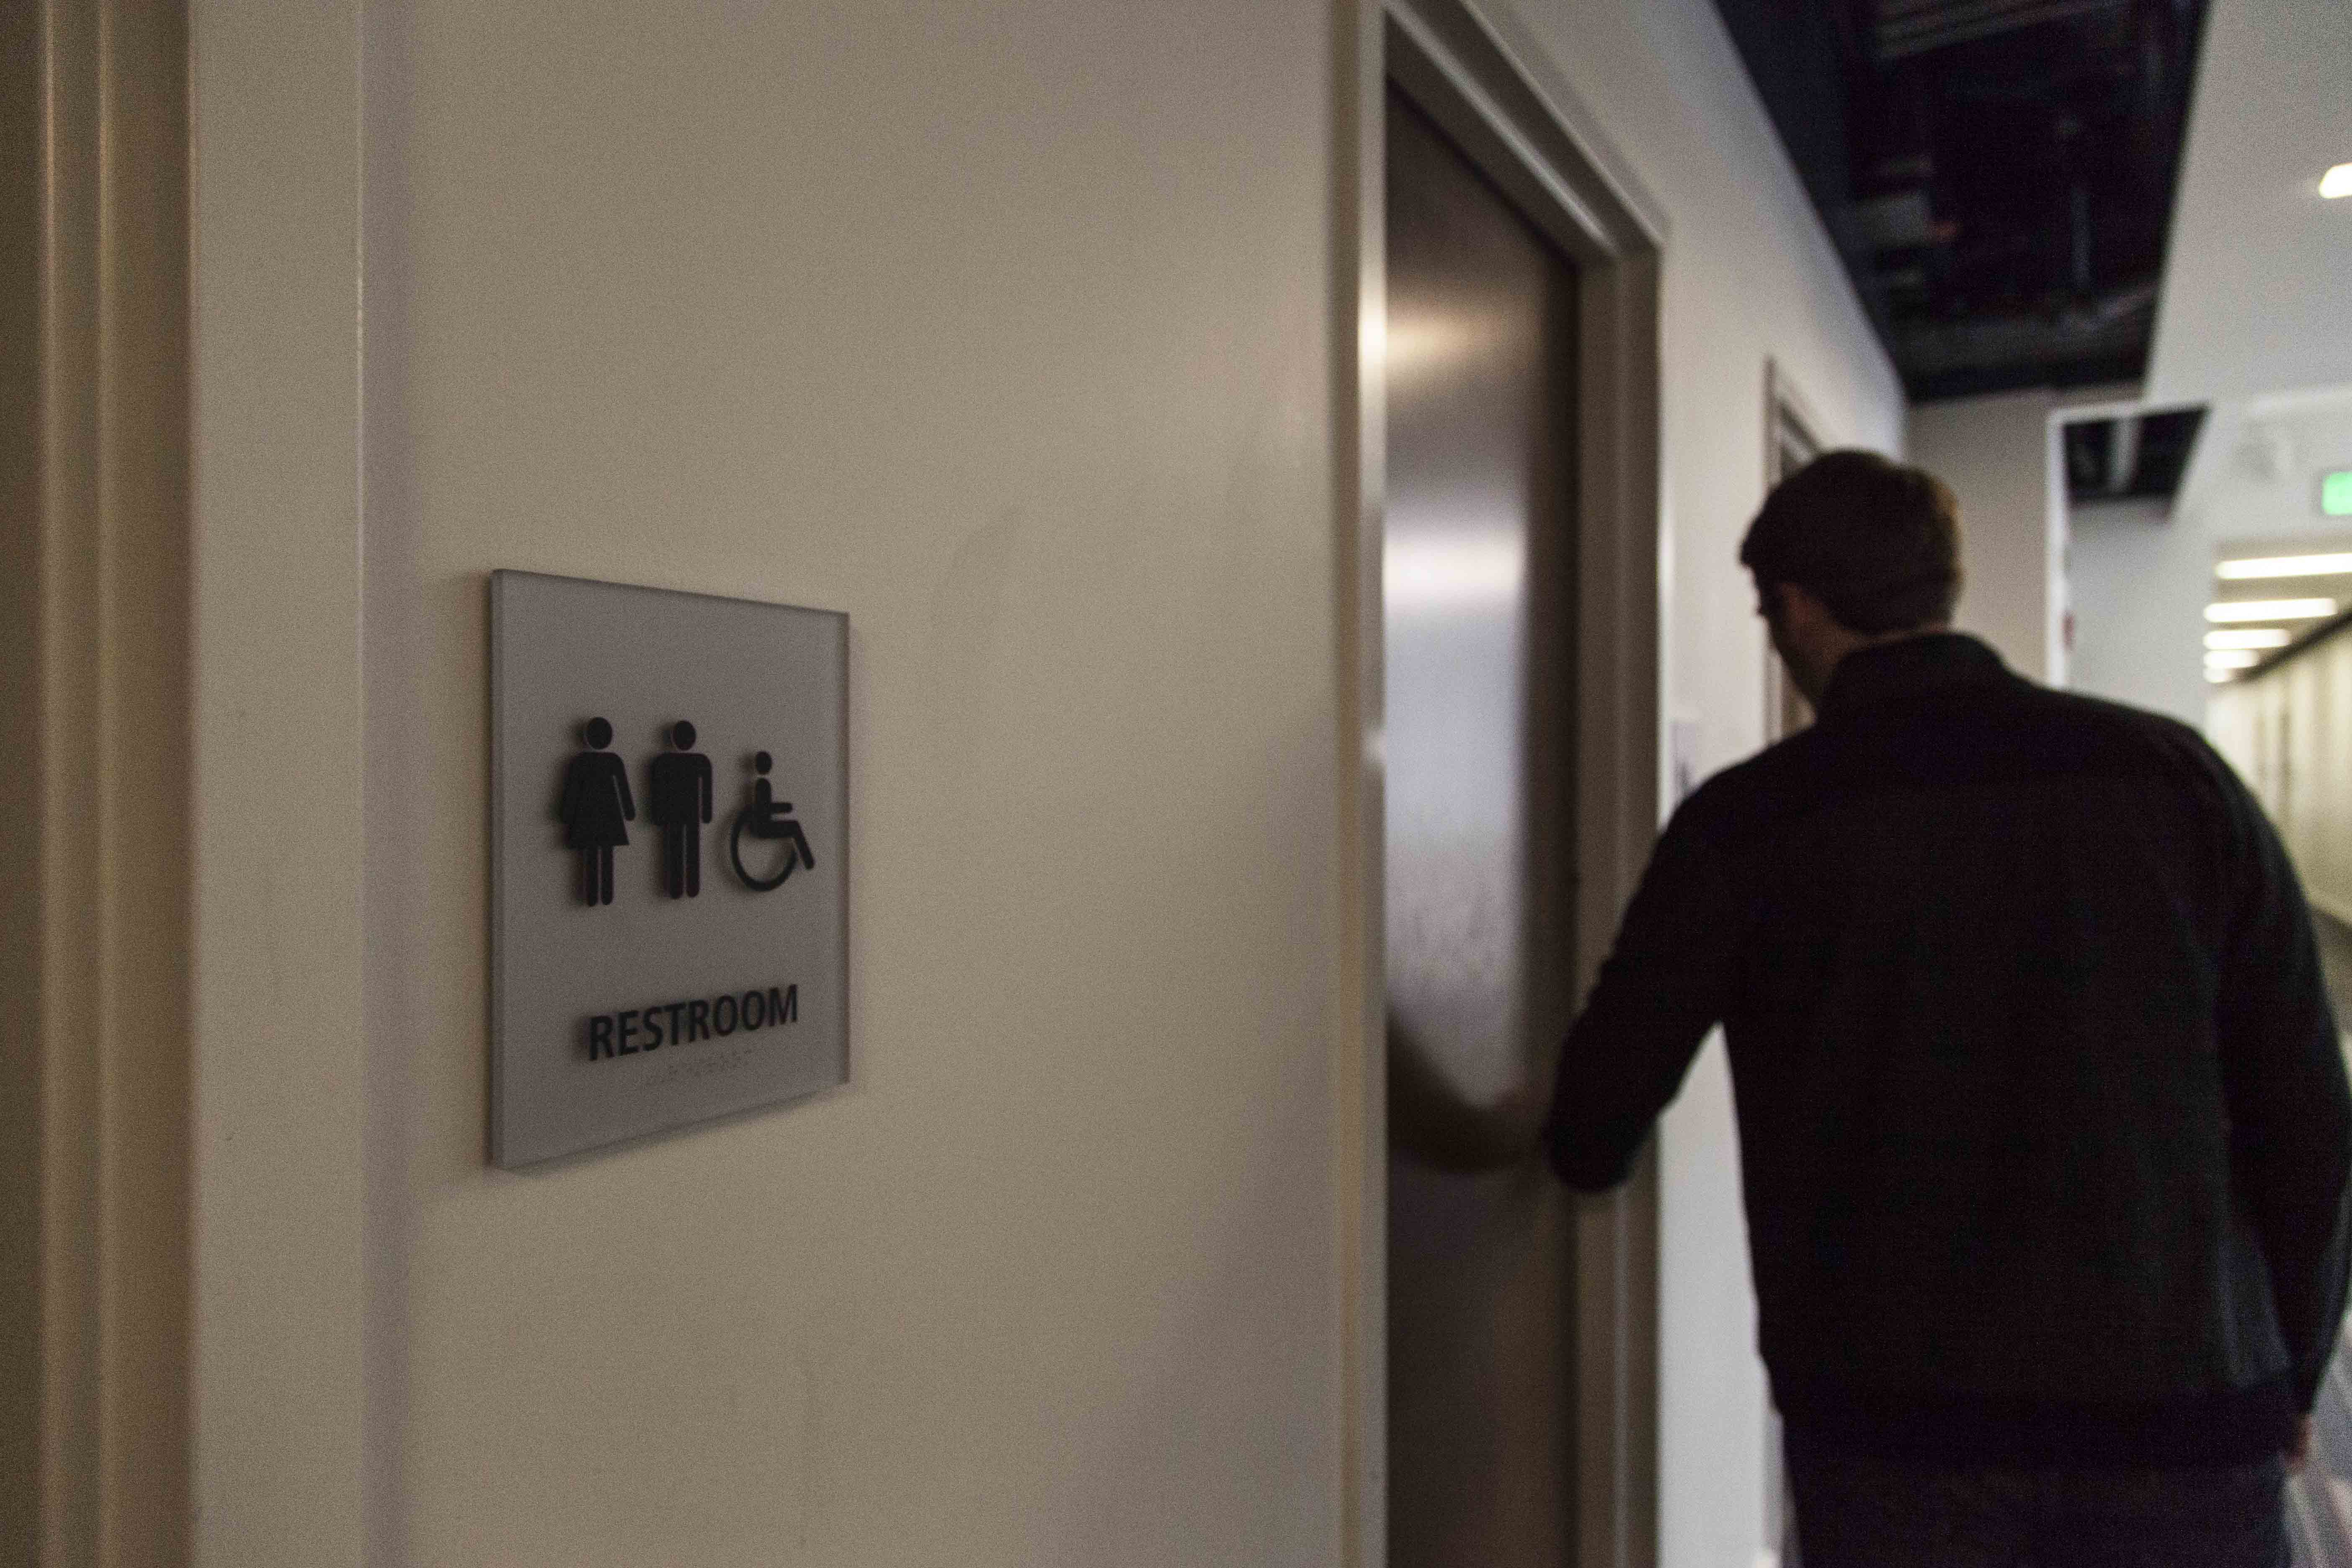 A student walks into a bathroom in the Science Center. Students have recently questioned the lack of gender-neutral restrooms in academic buildings.